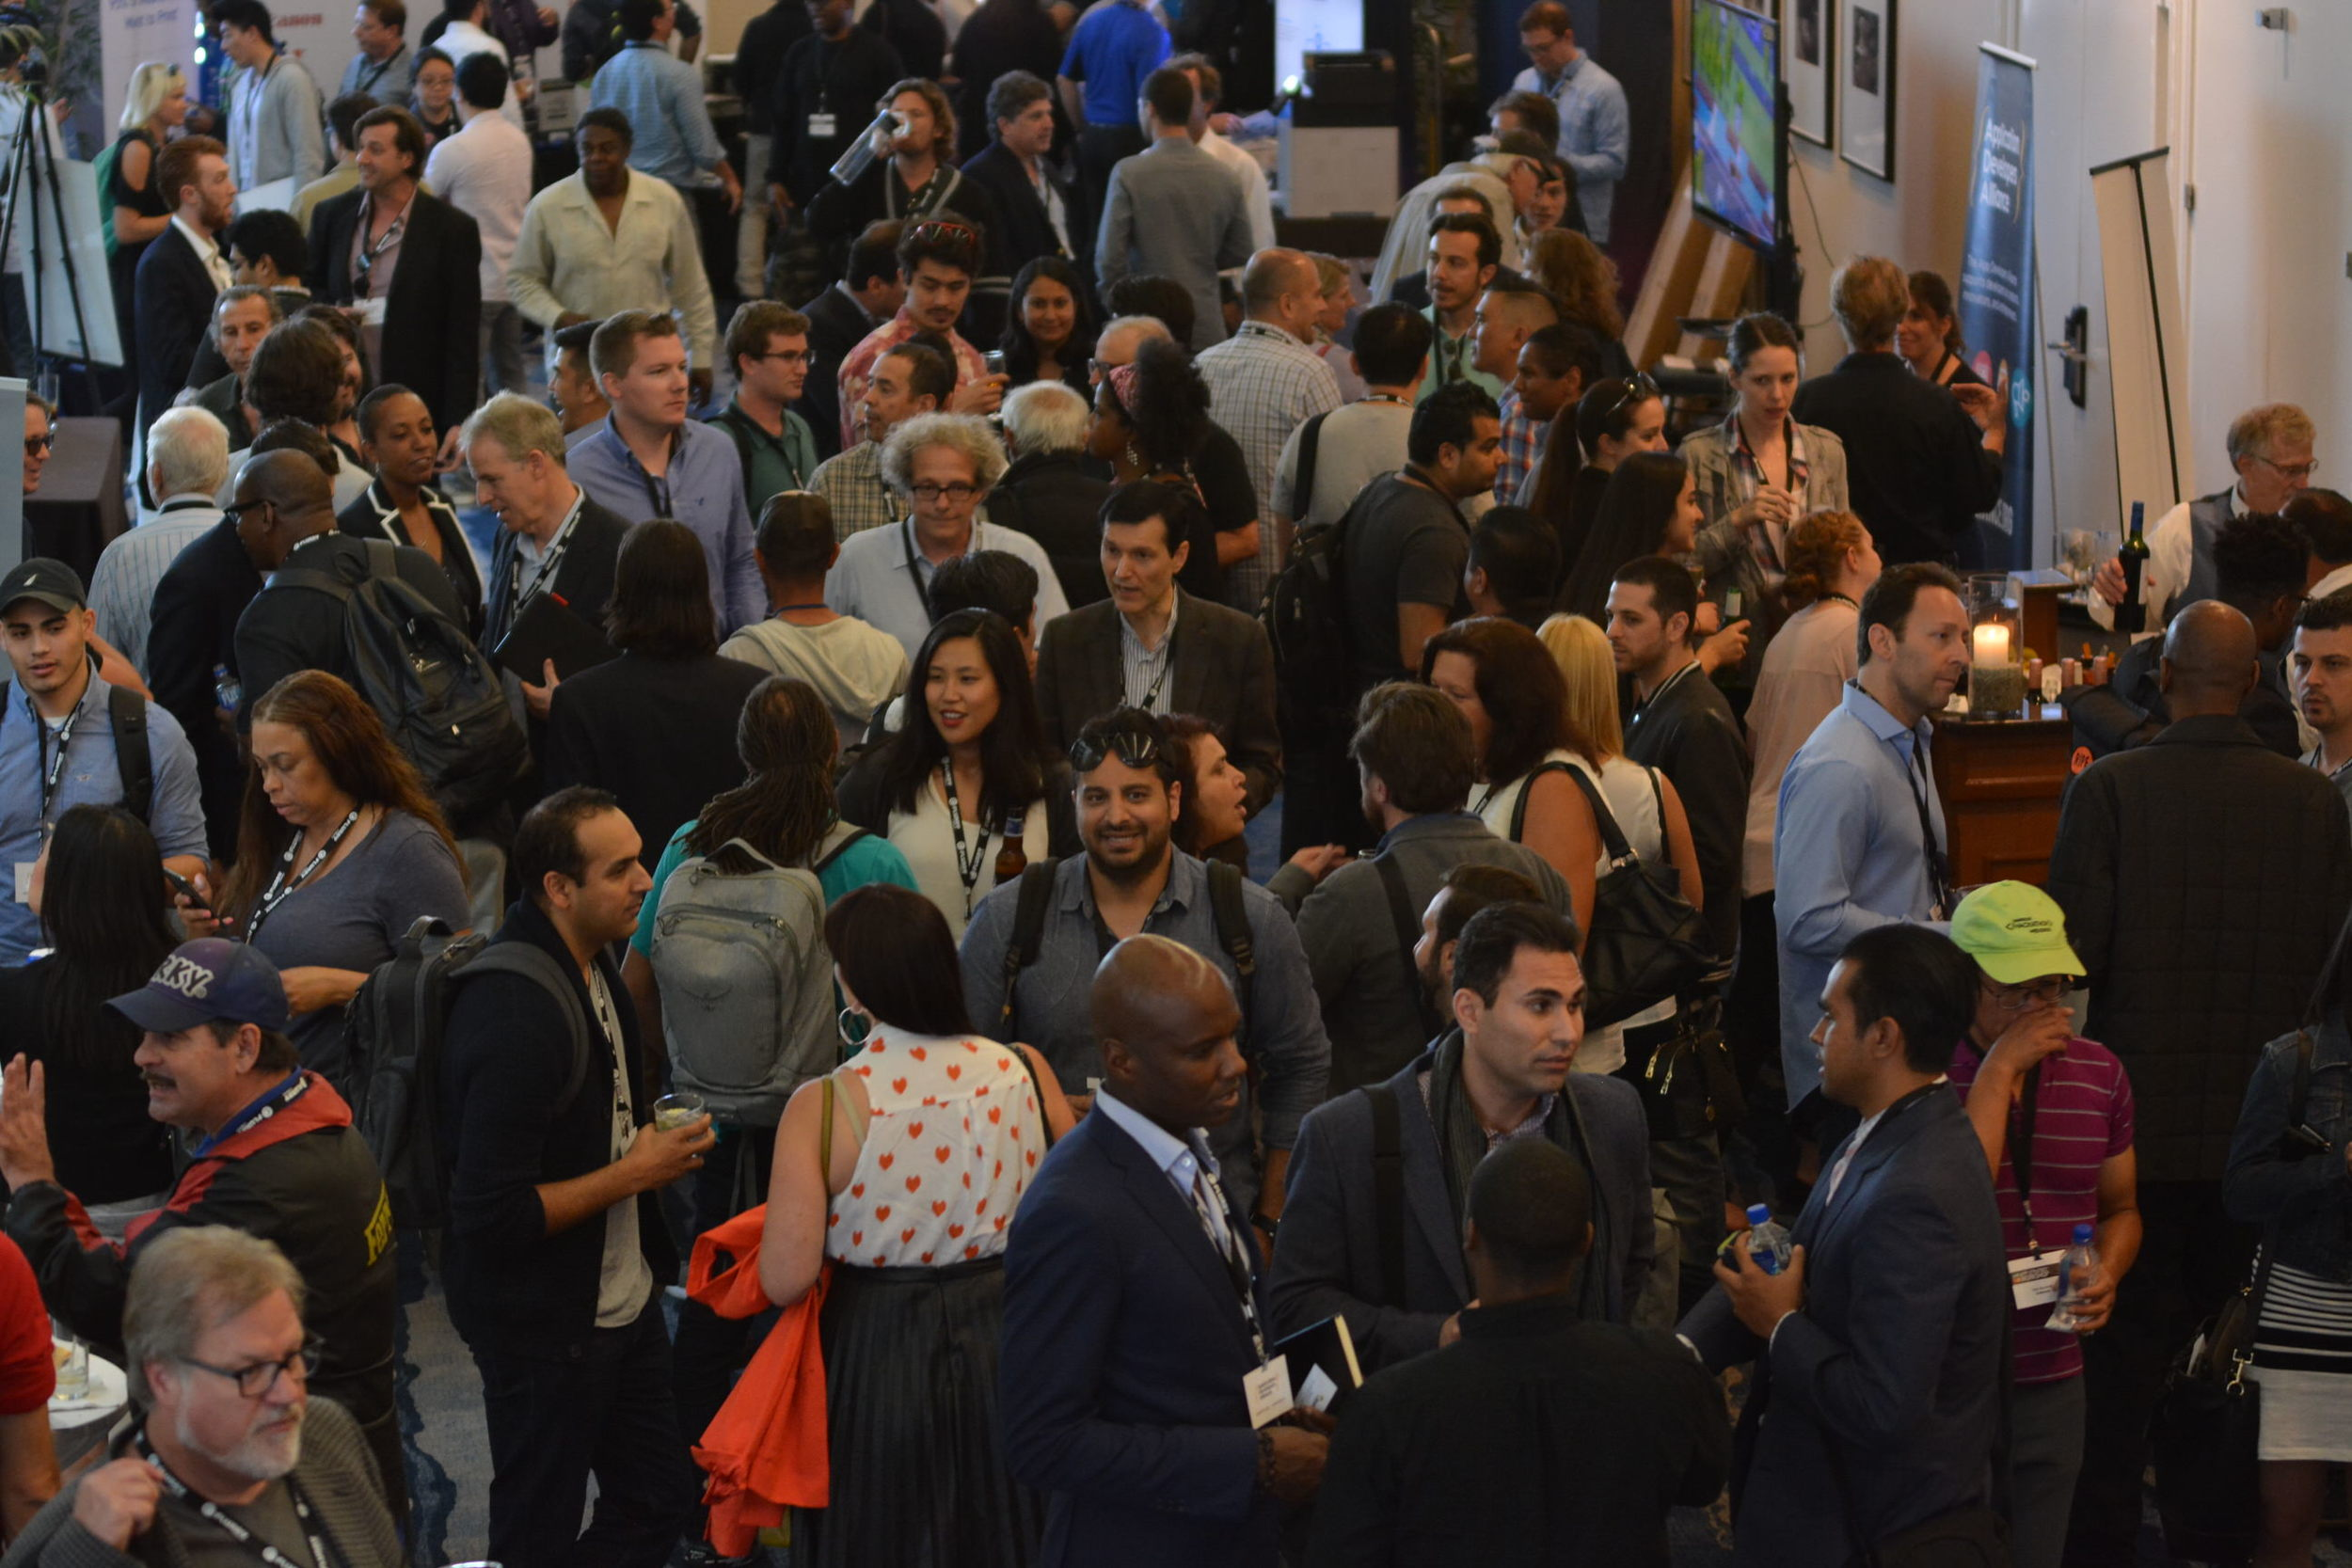 Our attendees, sponsors, and speakers all mingled together in our Happy Hour at the end